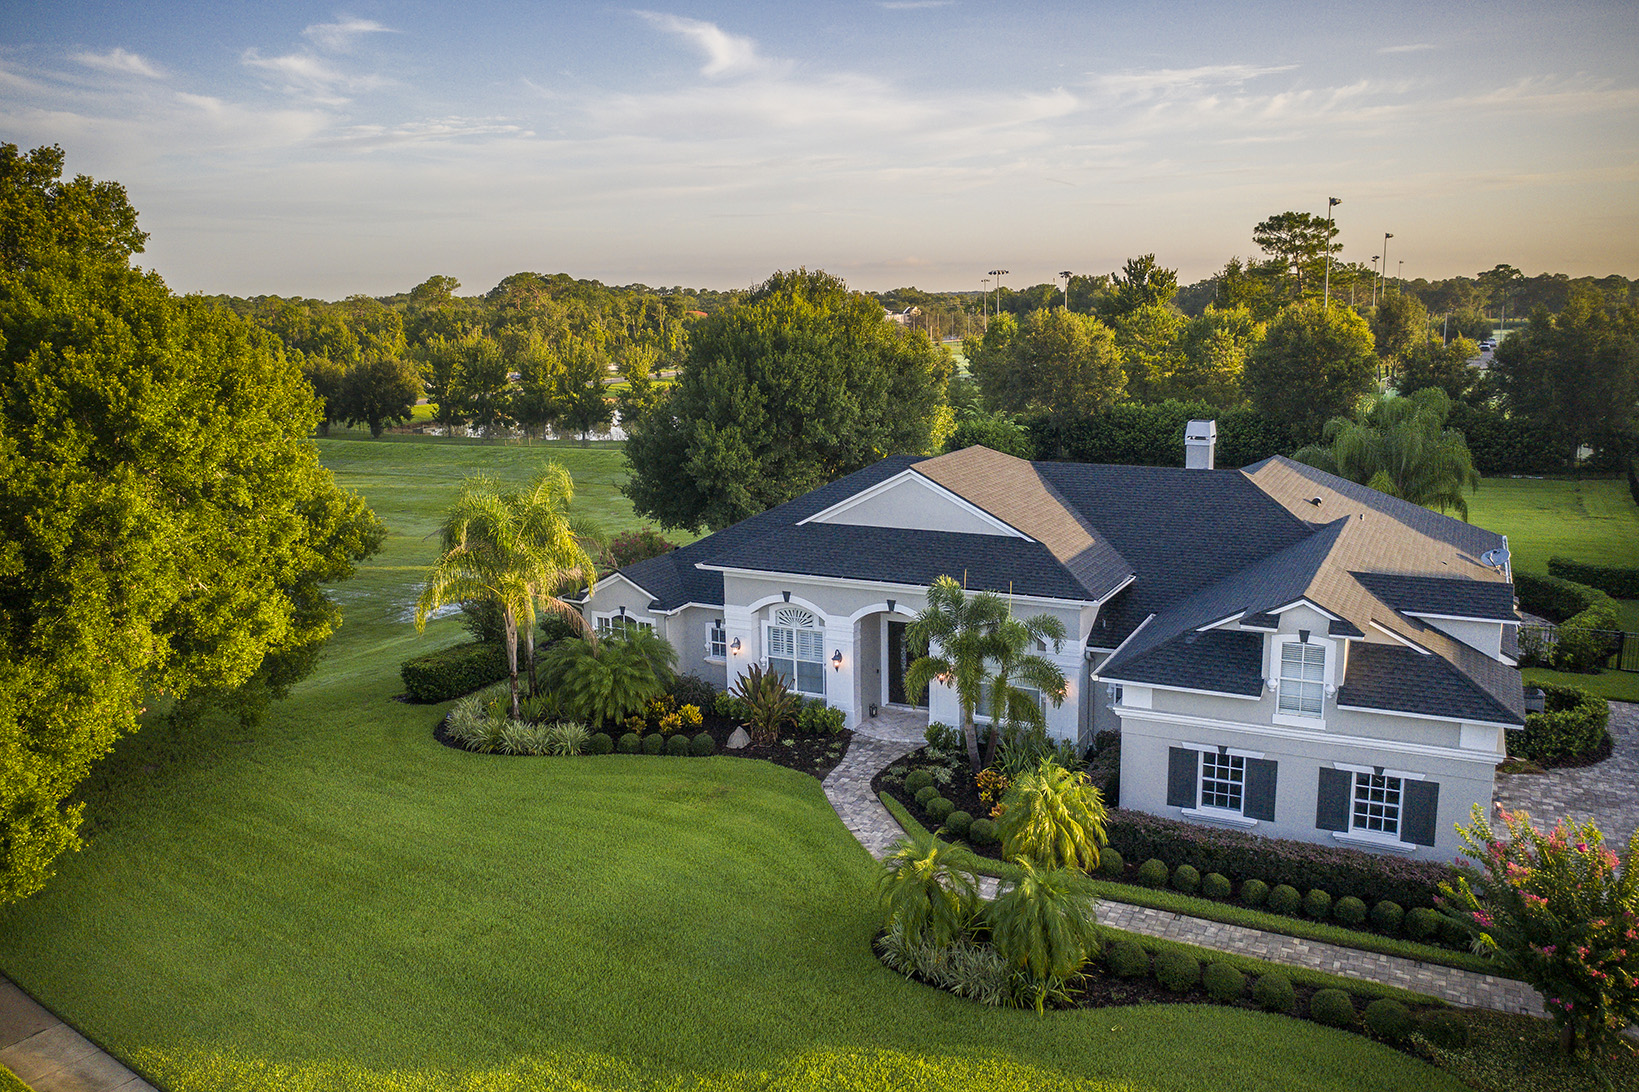 Landscape redesign at Windermere, Florida home